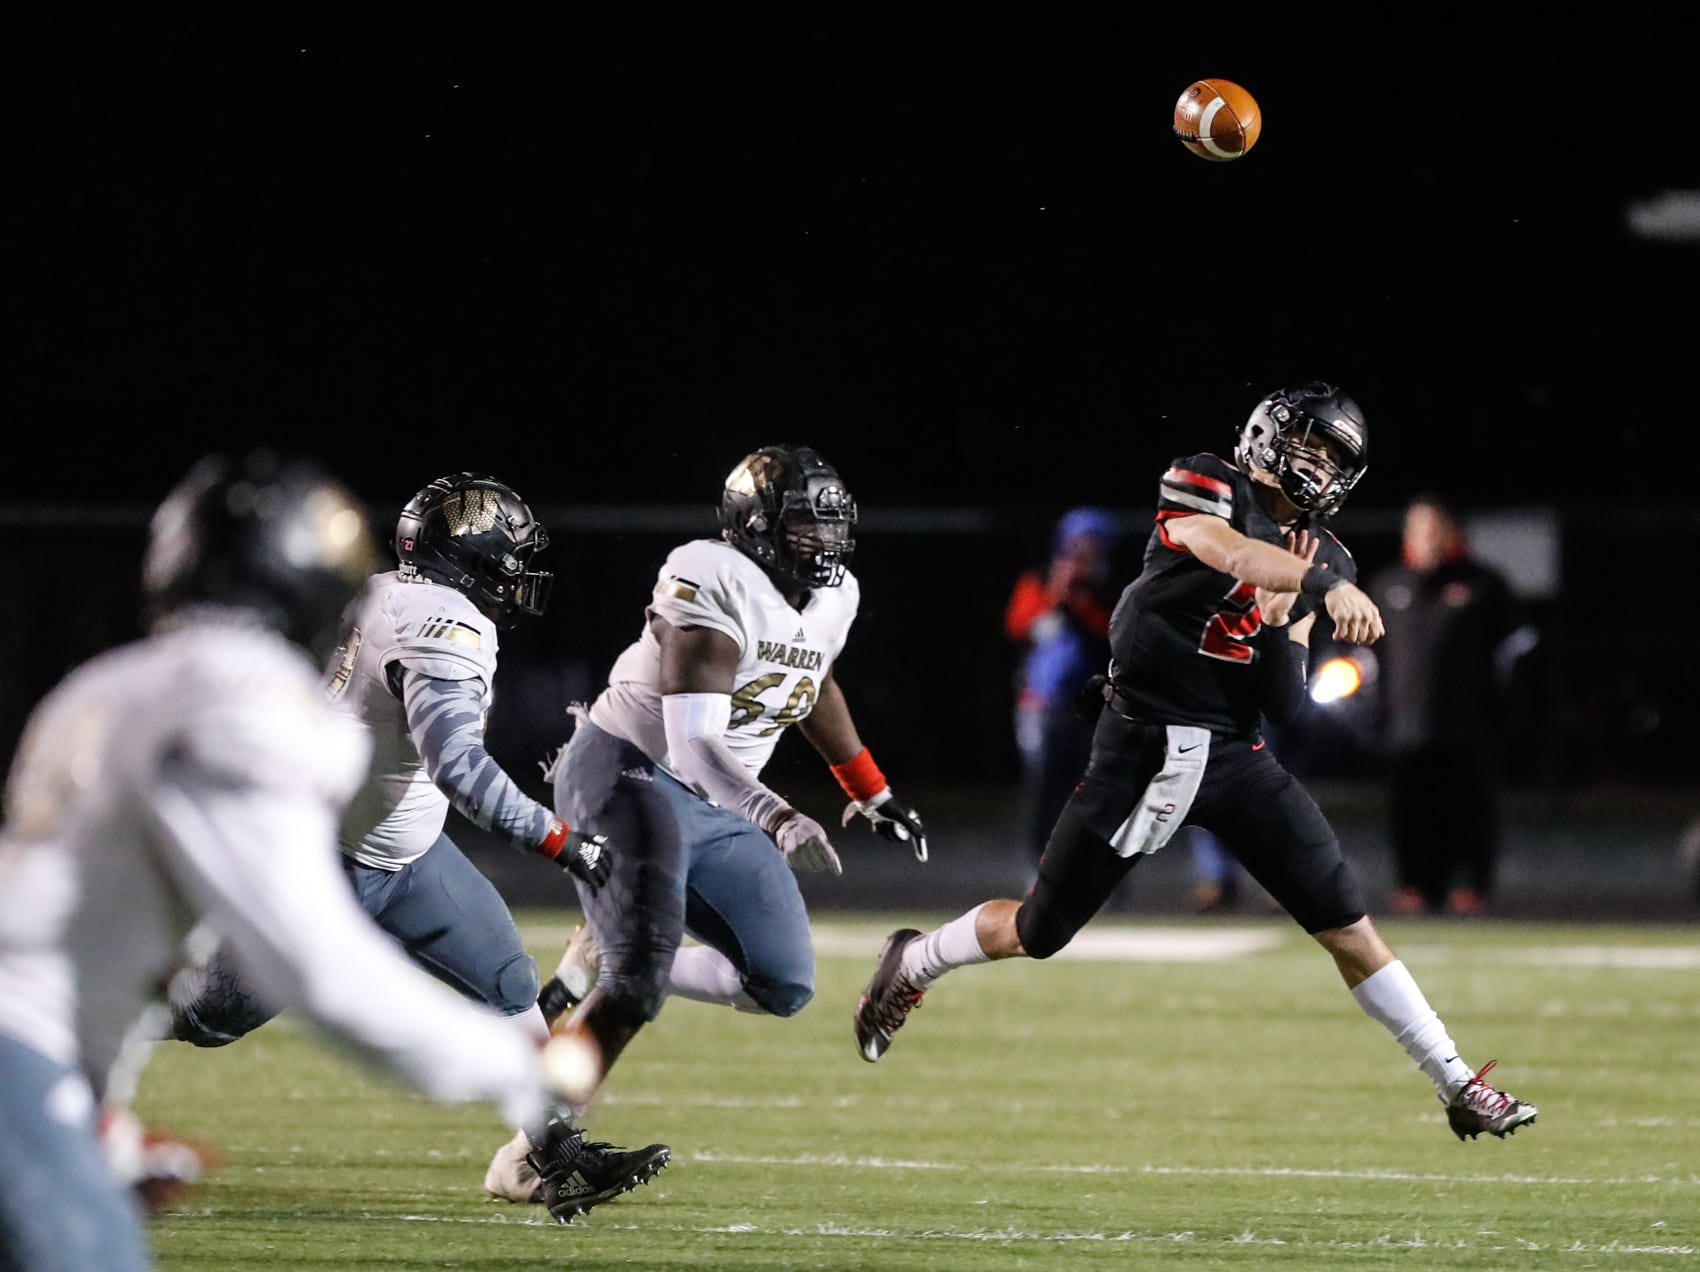 North Central High School Panthers QB Liam Thompson (2), throws a complete pass on the run during a regional finals game against the Warren Central High School Warriors at North Central High School on Friday, Nov. 9, 2018.